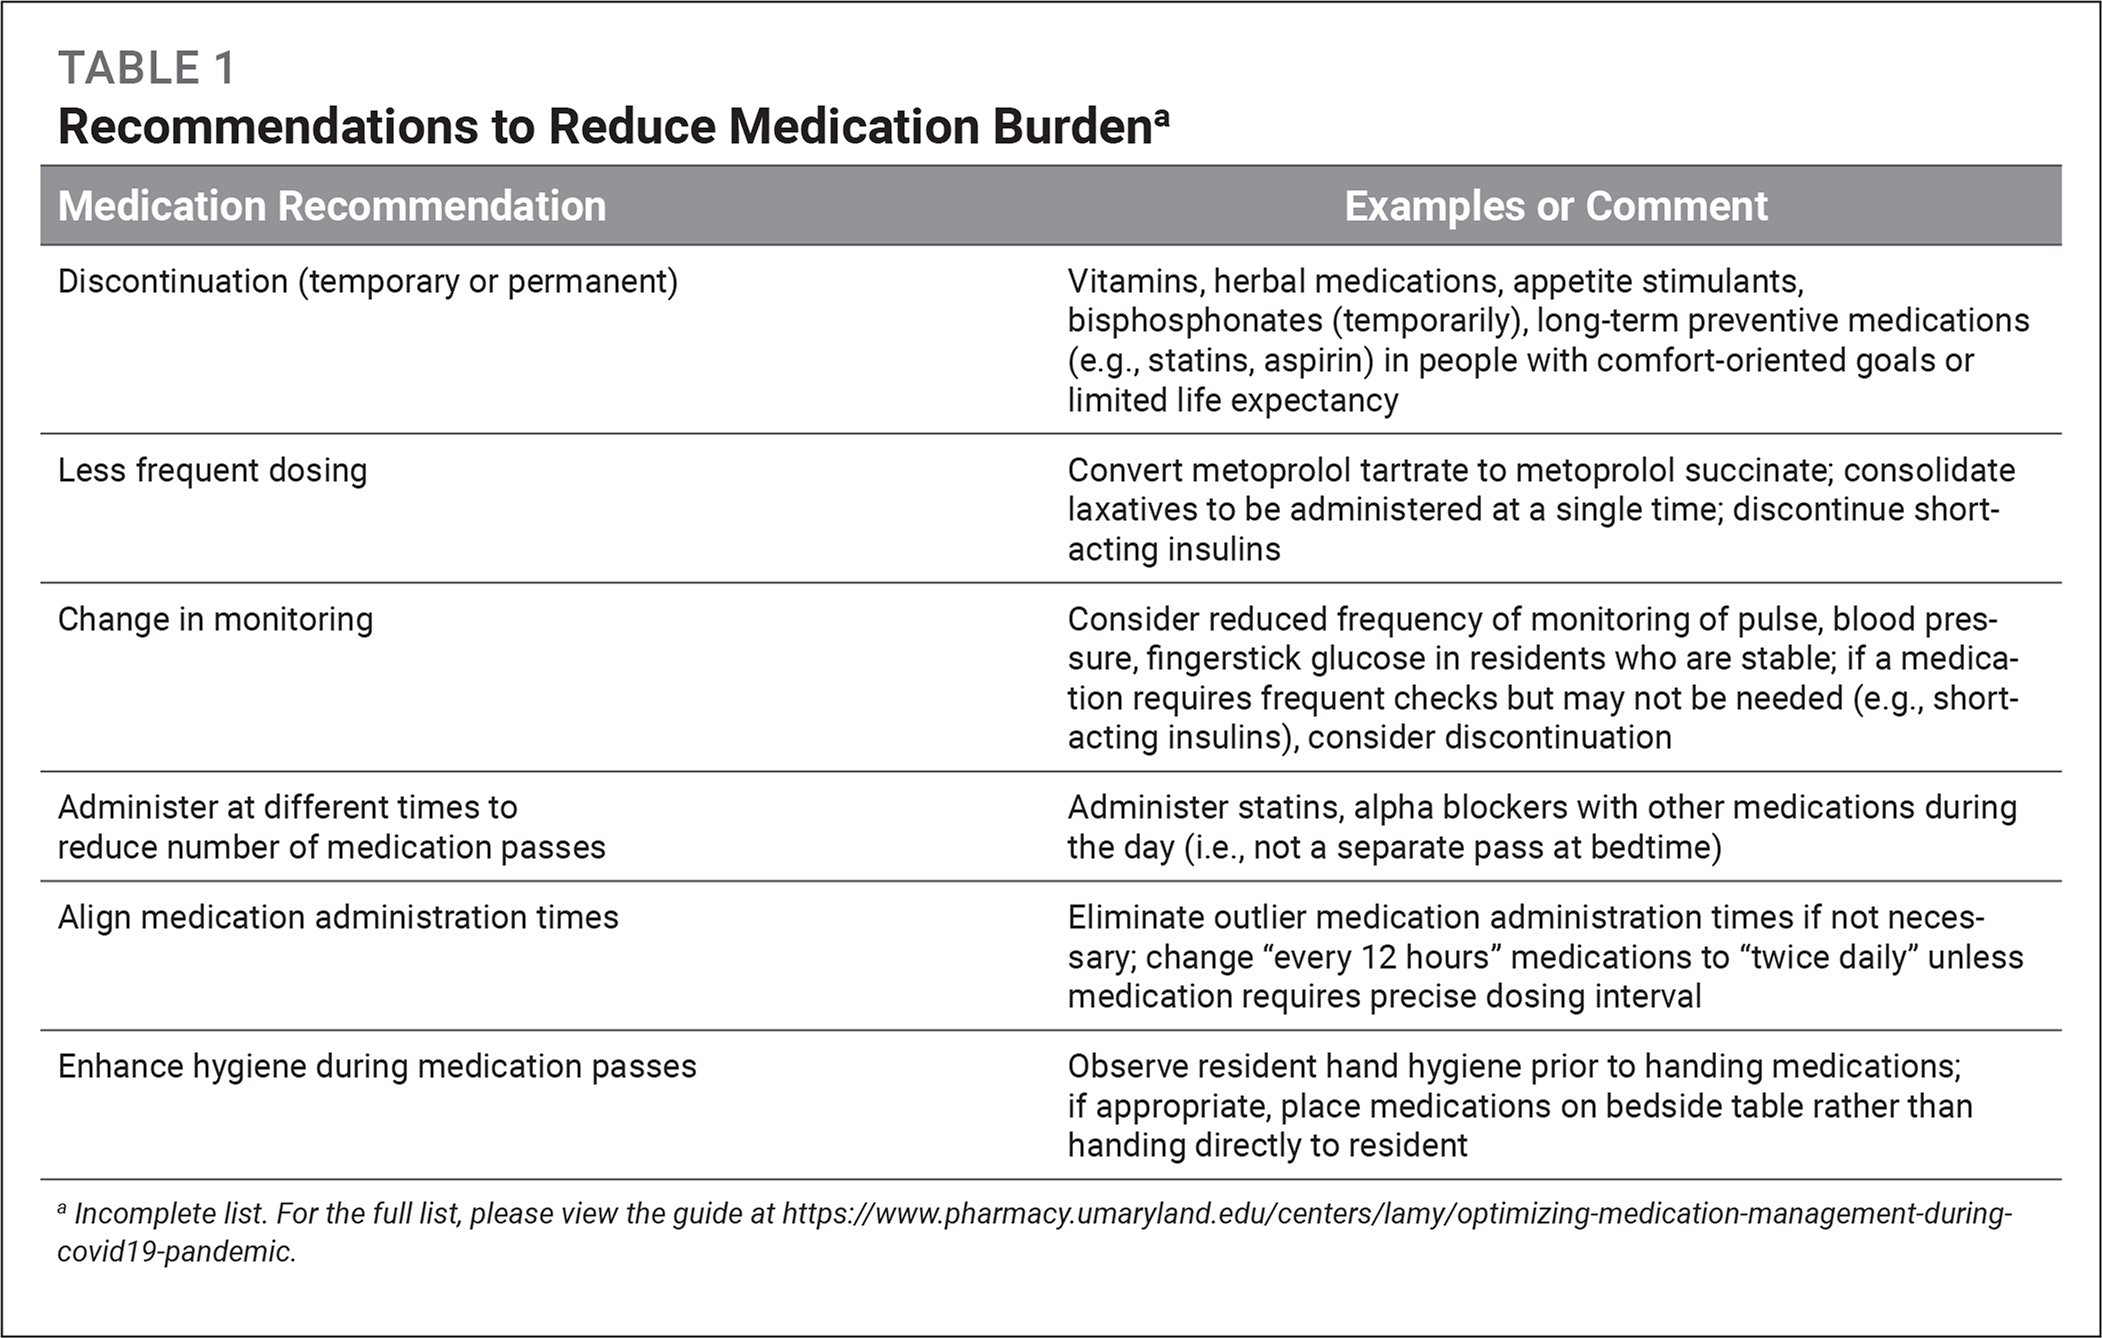 Recommendations to Reduce Medication Burdena